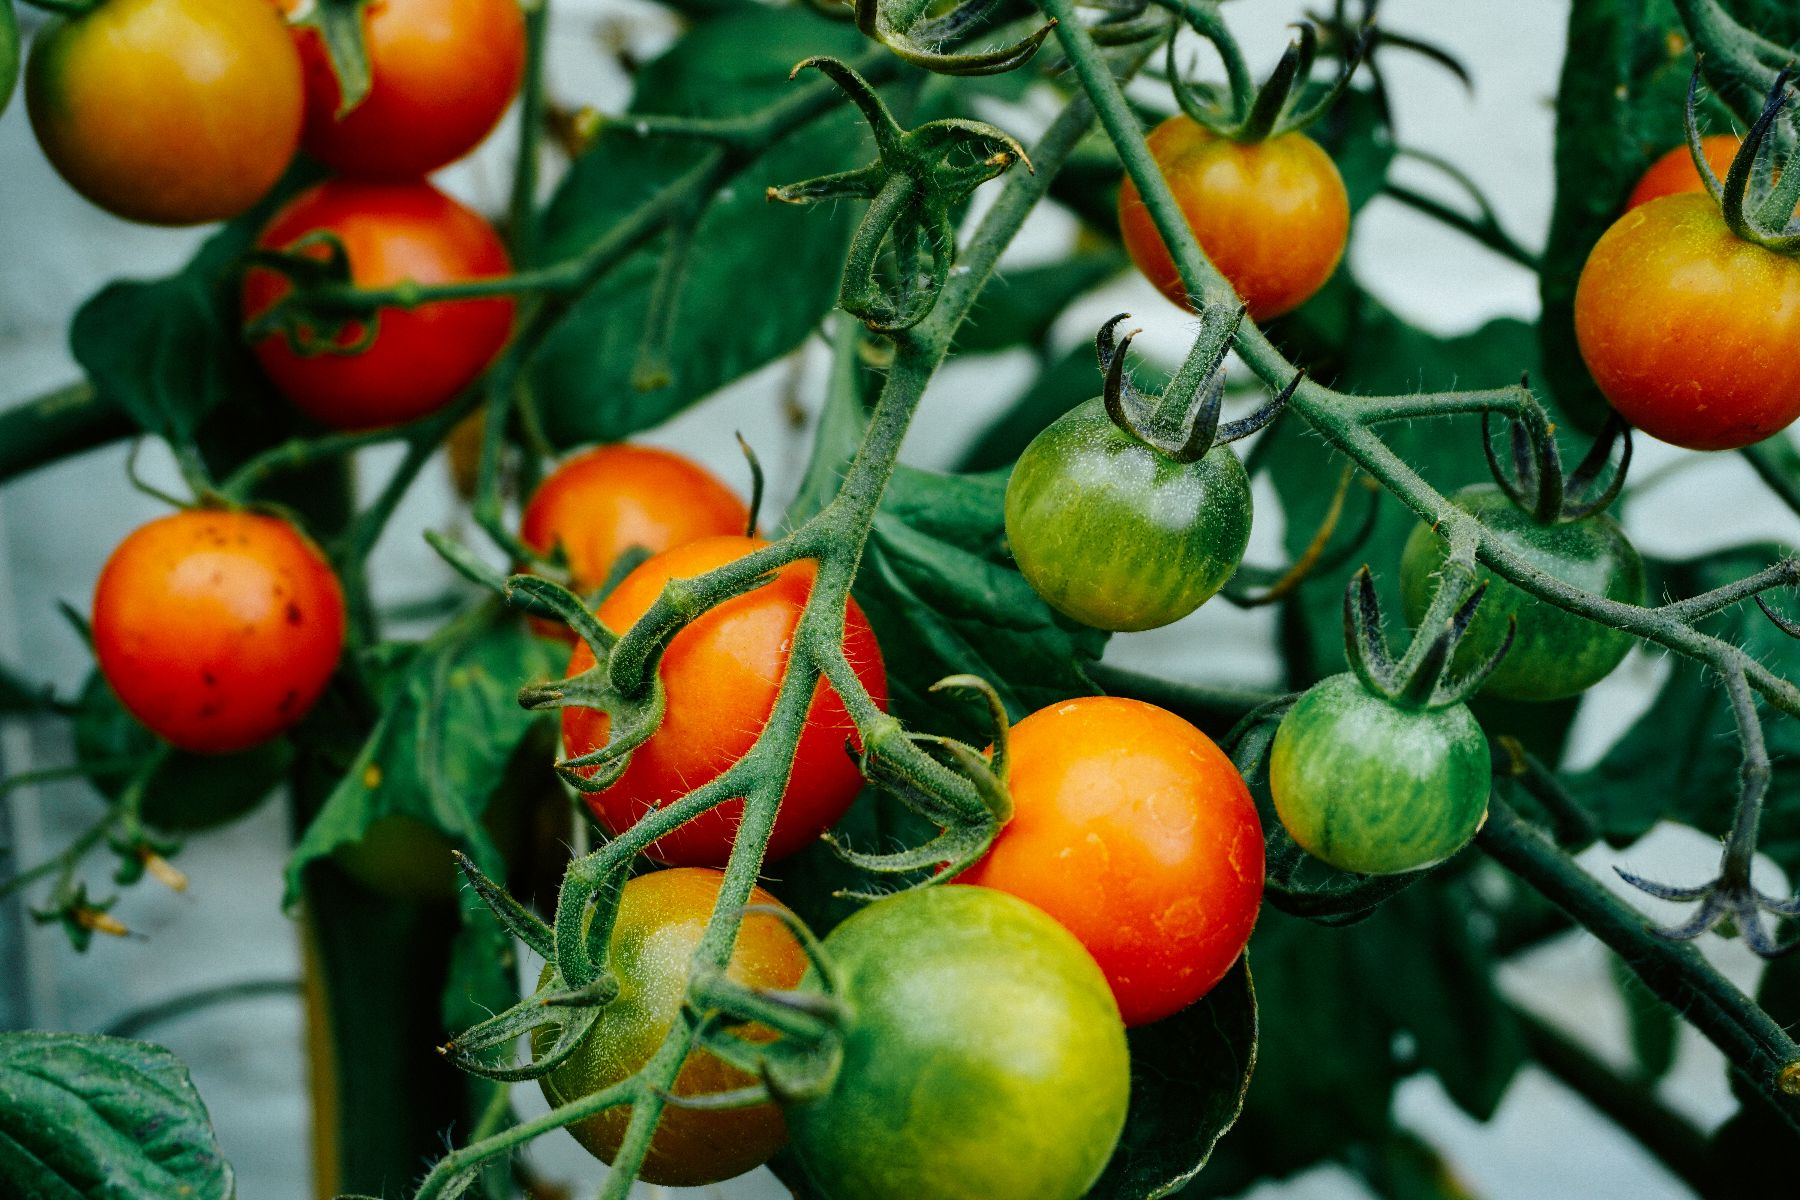 Plant your tomatoes